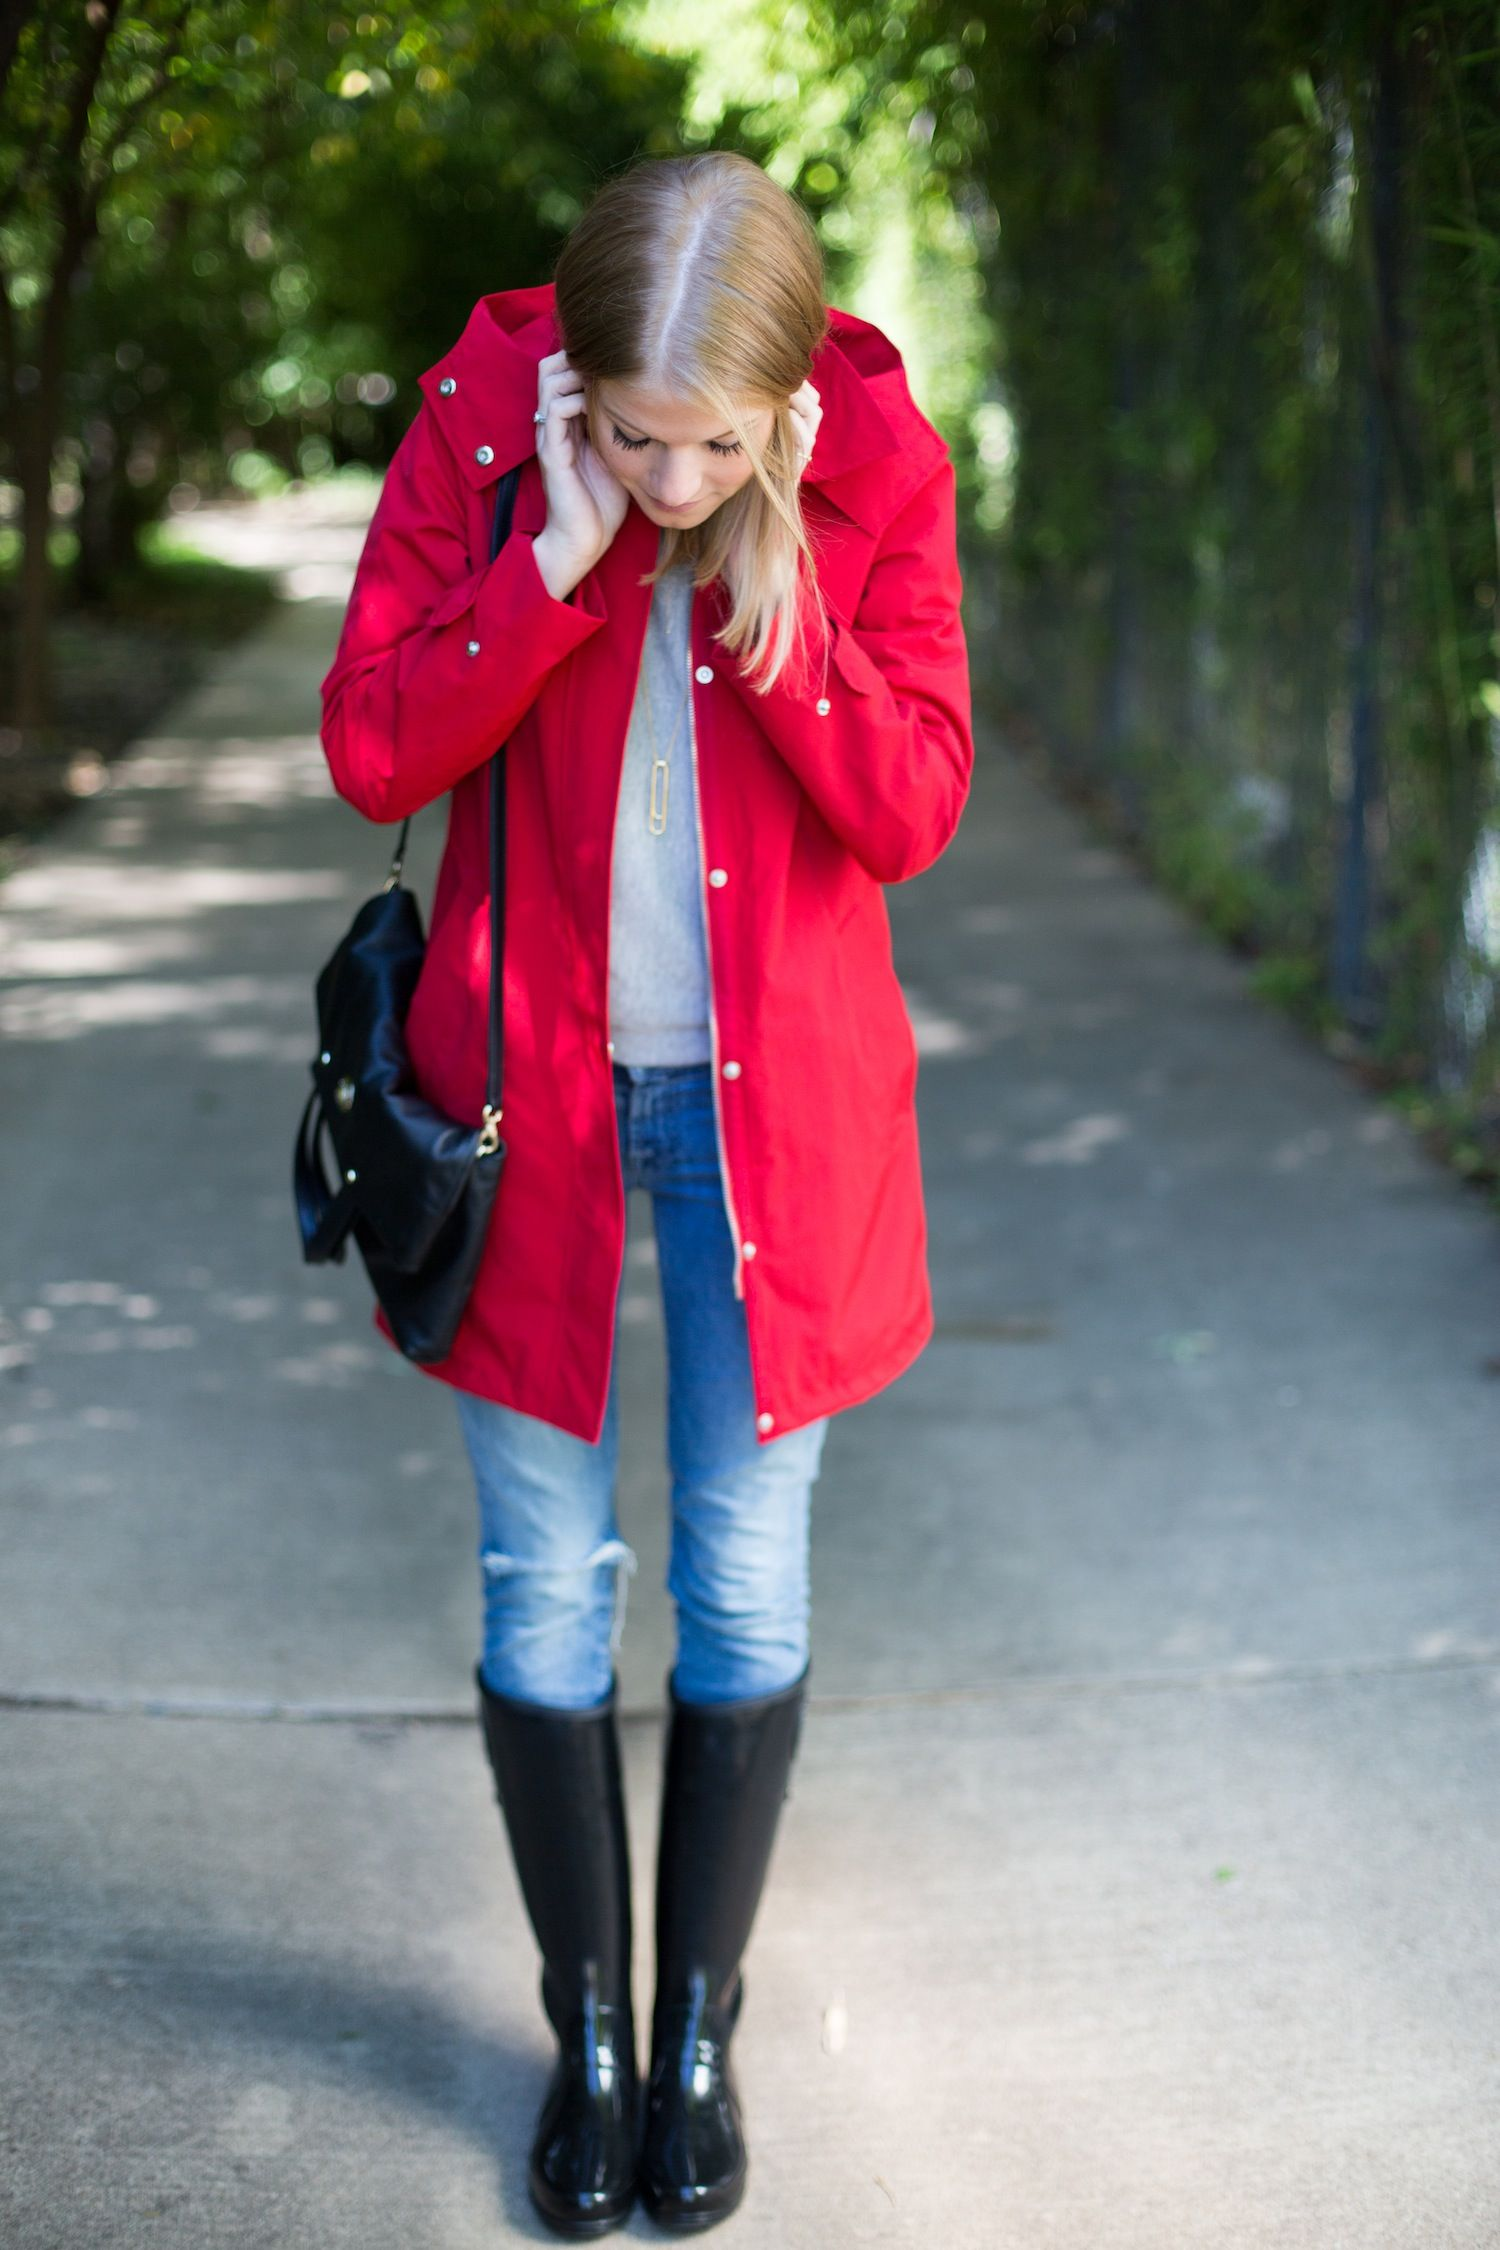 How to rain wear boots fashionable recommendations to wear in spring in 2019